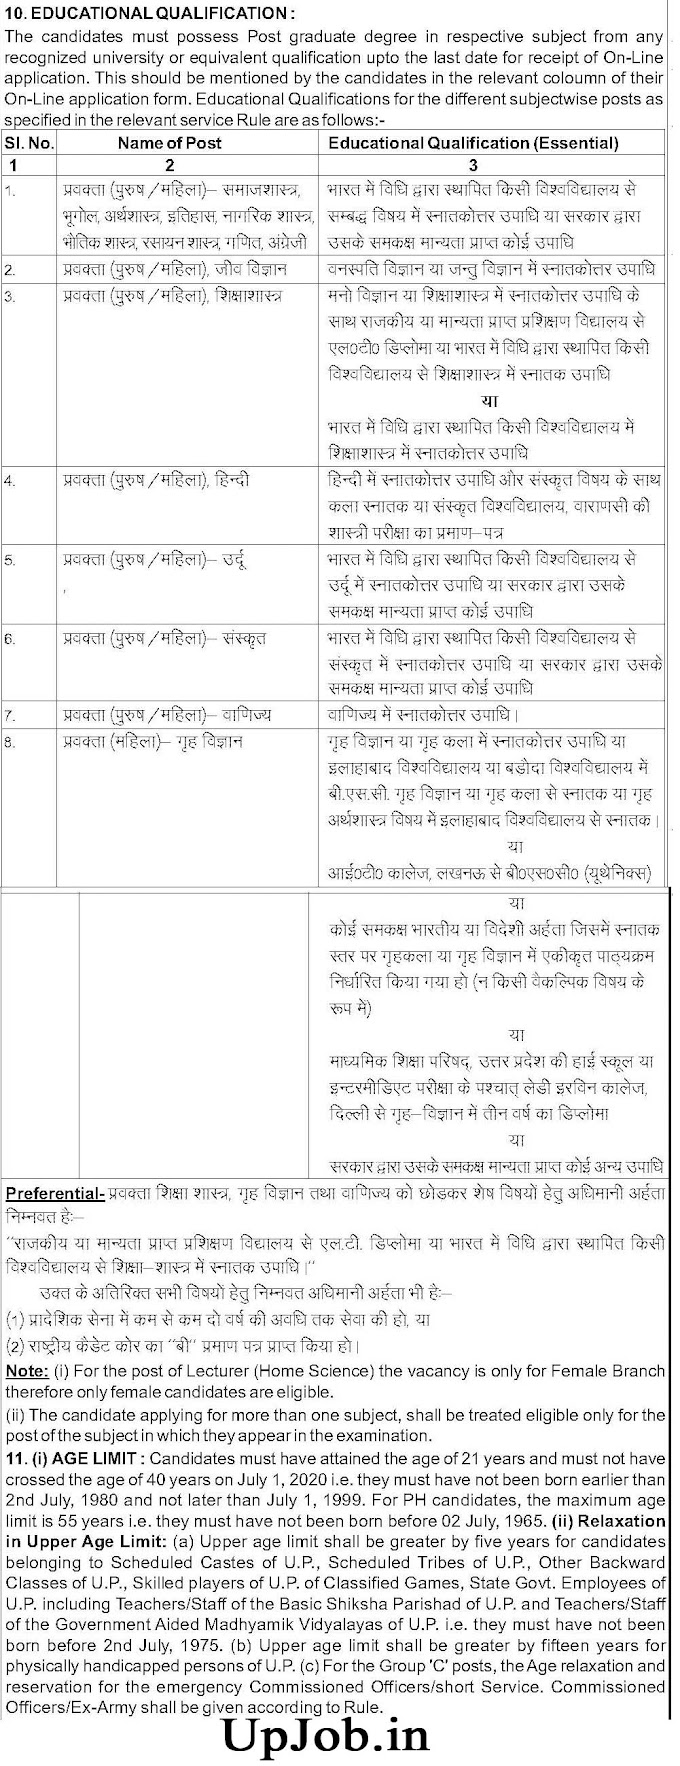 1473 LT Grade UP GIC Teacher recruitment 2021 Lecturer Application Form, Notification